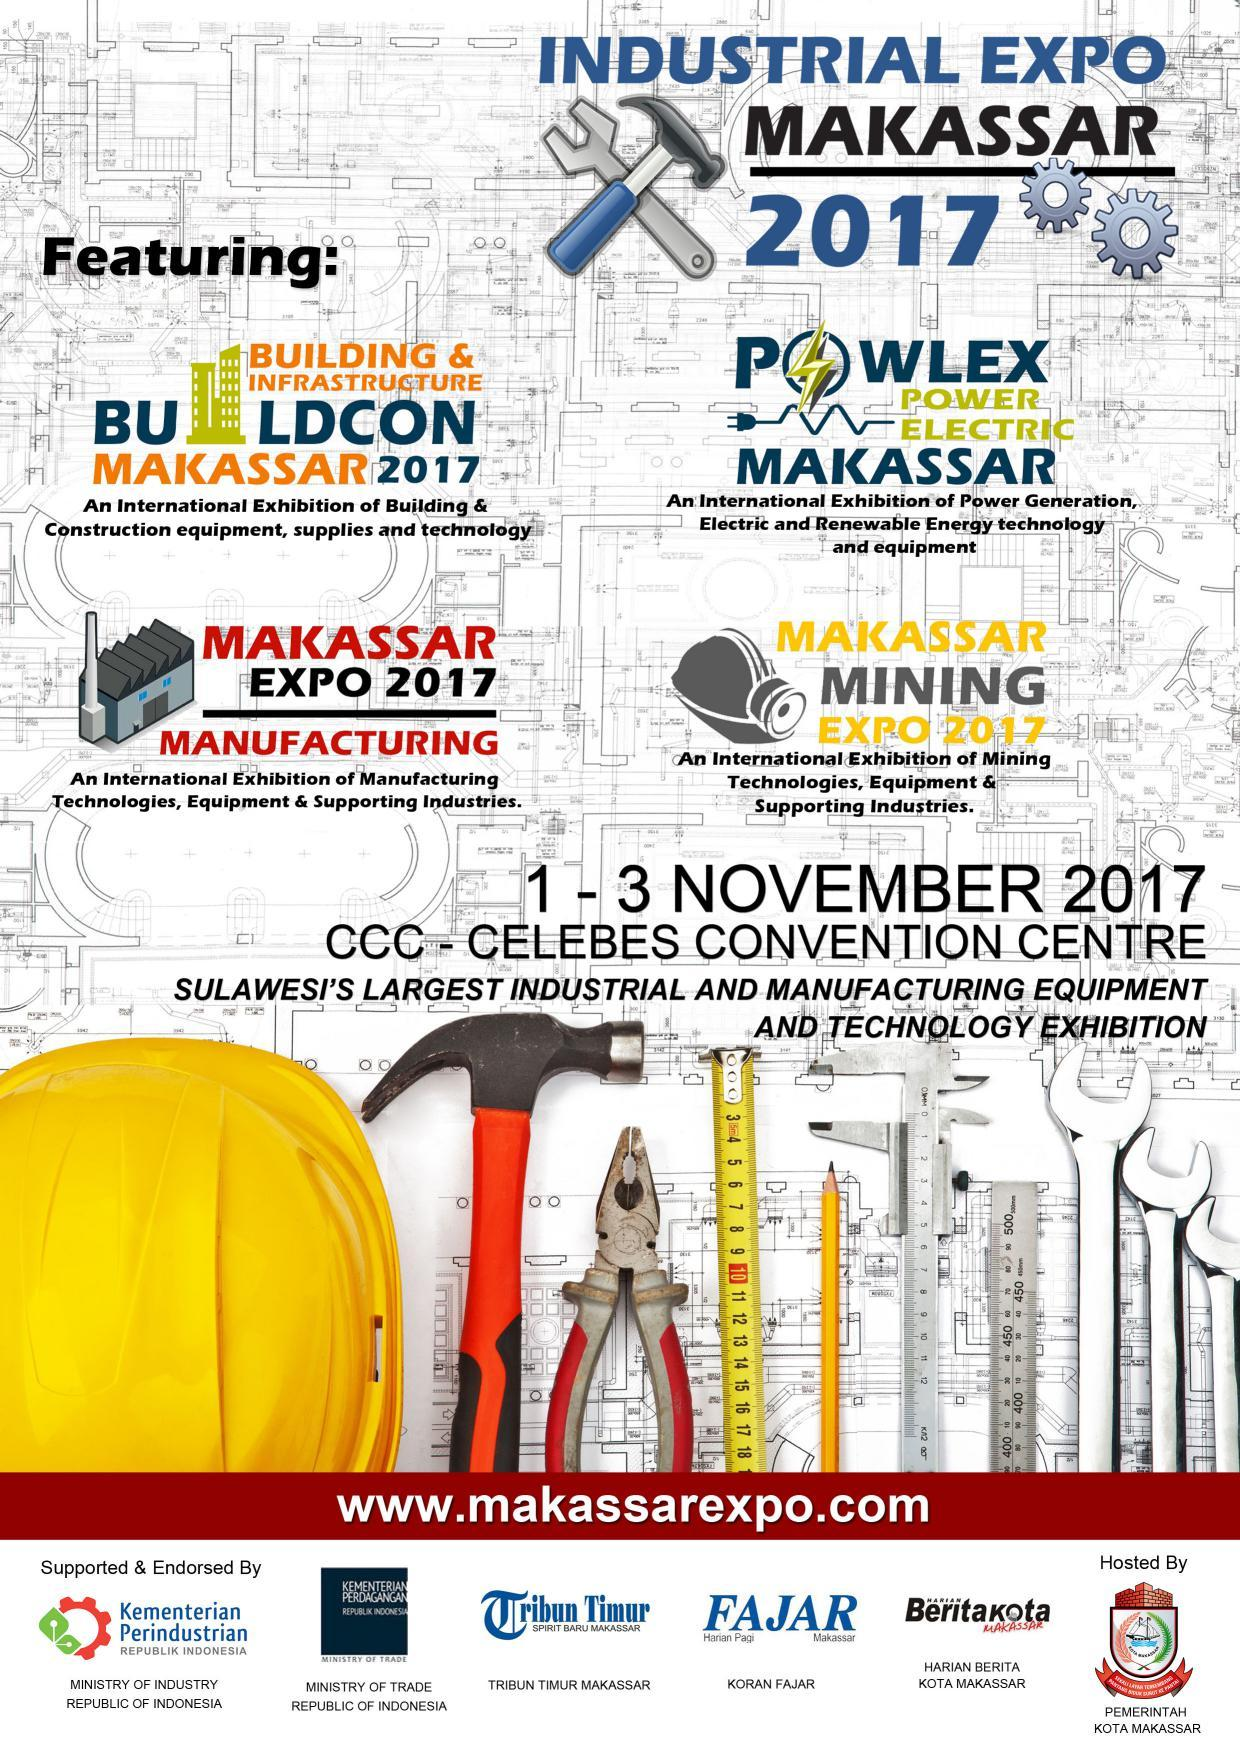 Industrial Expo Makassar - Celebes Convention Centre, 1 - 3 November 2017